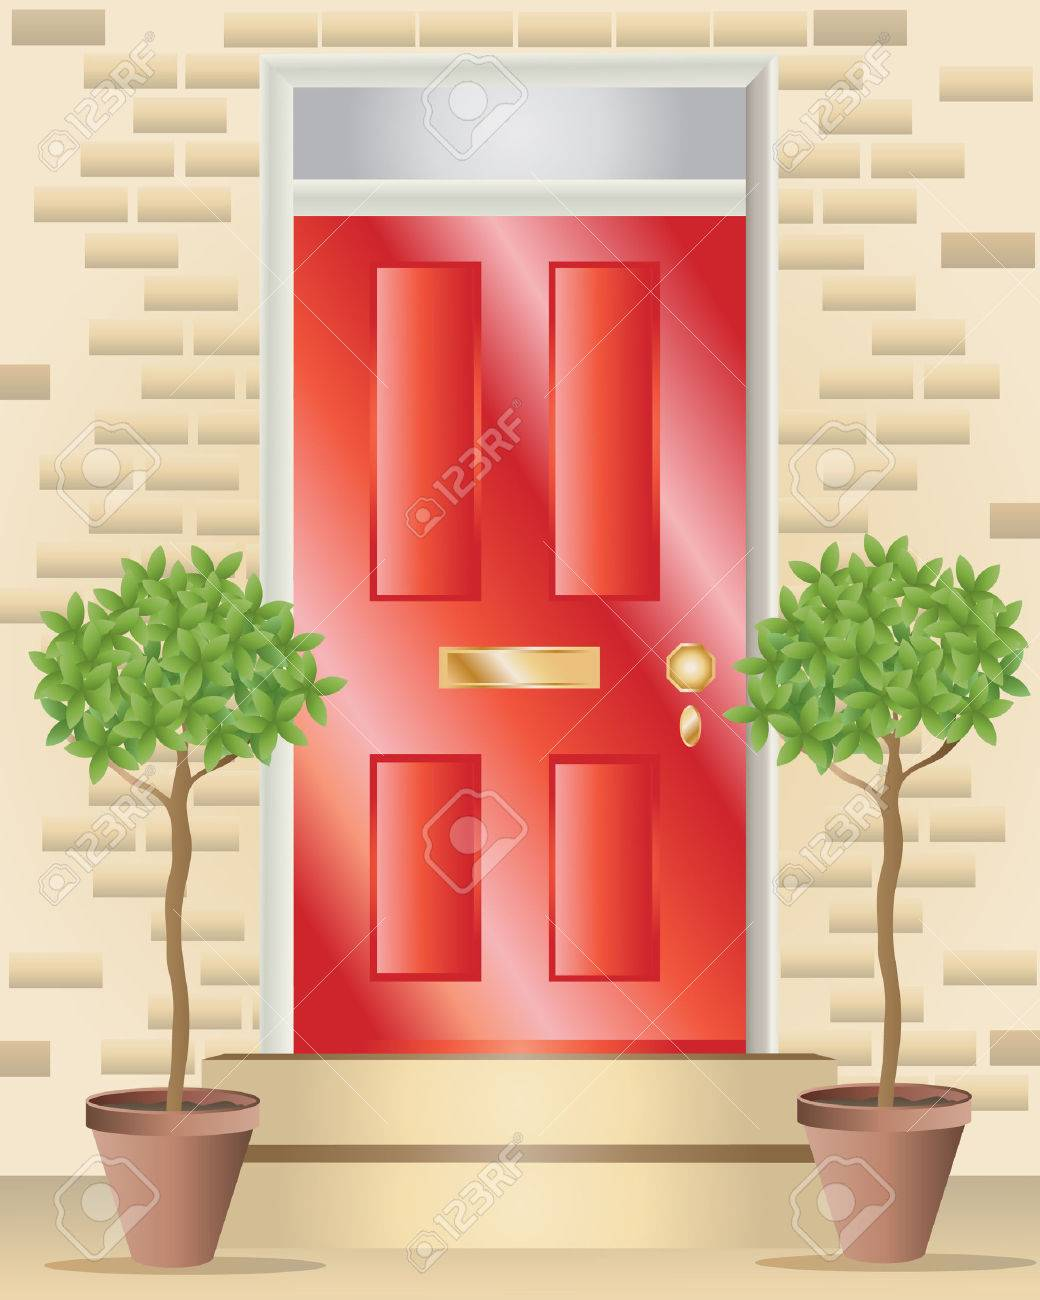 Front door clipart - Red Front Door An Illustration Of A Bright Red Shiny Front Door With Brass